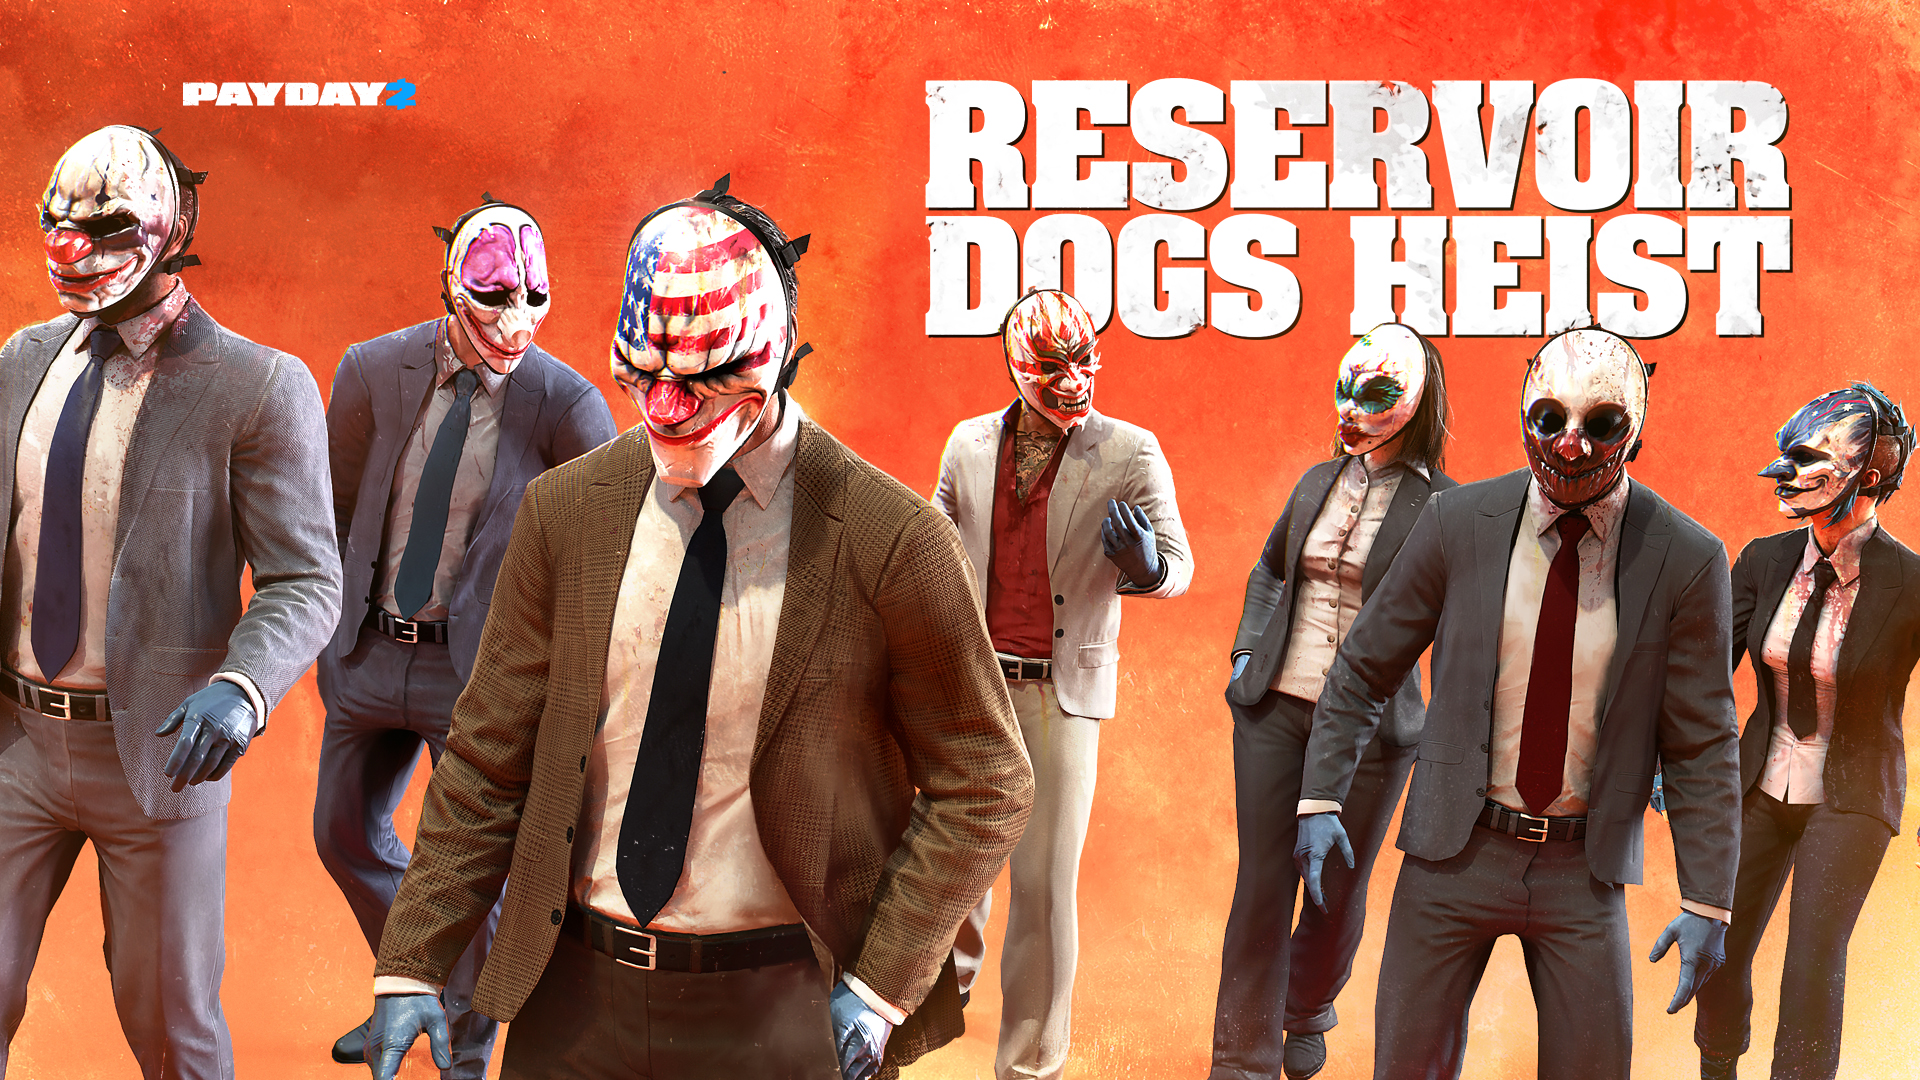 Images Payday  Reservoir Dogs Heist X